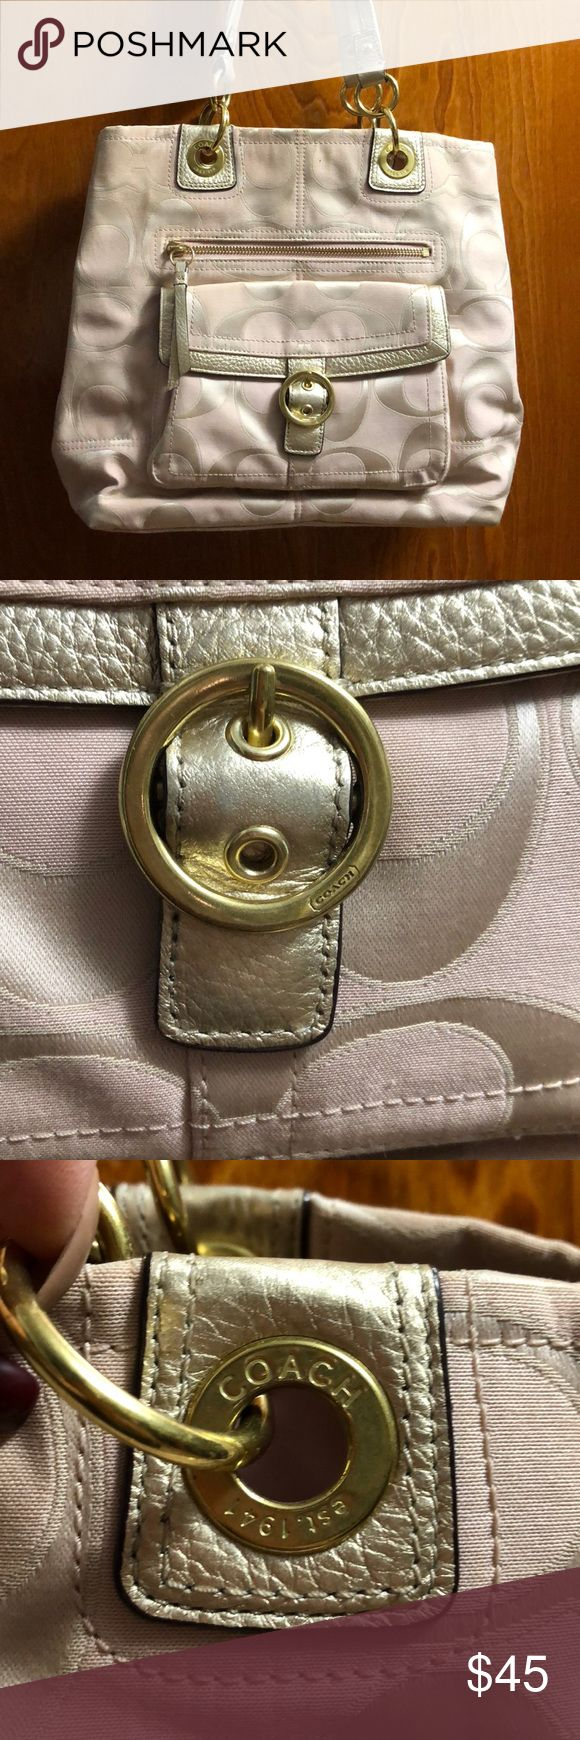 Authentic Coach Tote Bag. Light Pink and Gold Used Coach tote bag. Light Pink withLight Gold trim. Used Coach Bags Totes